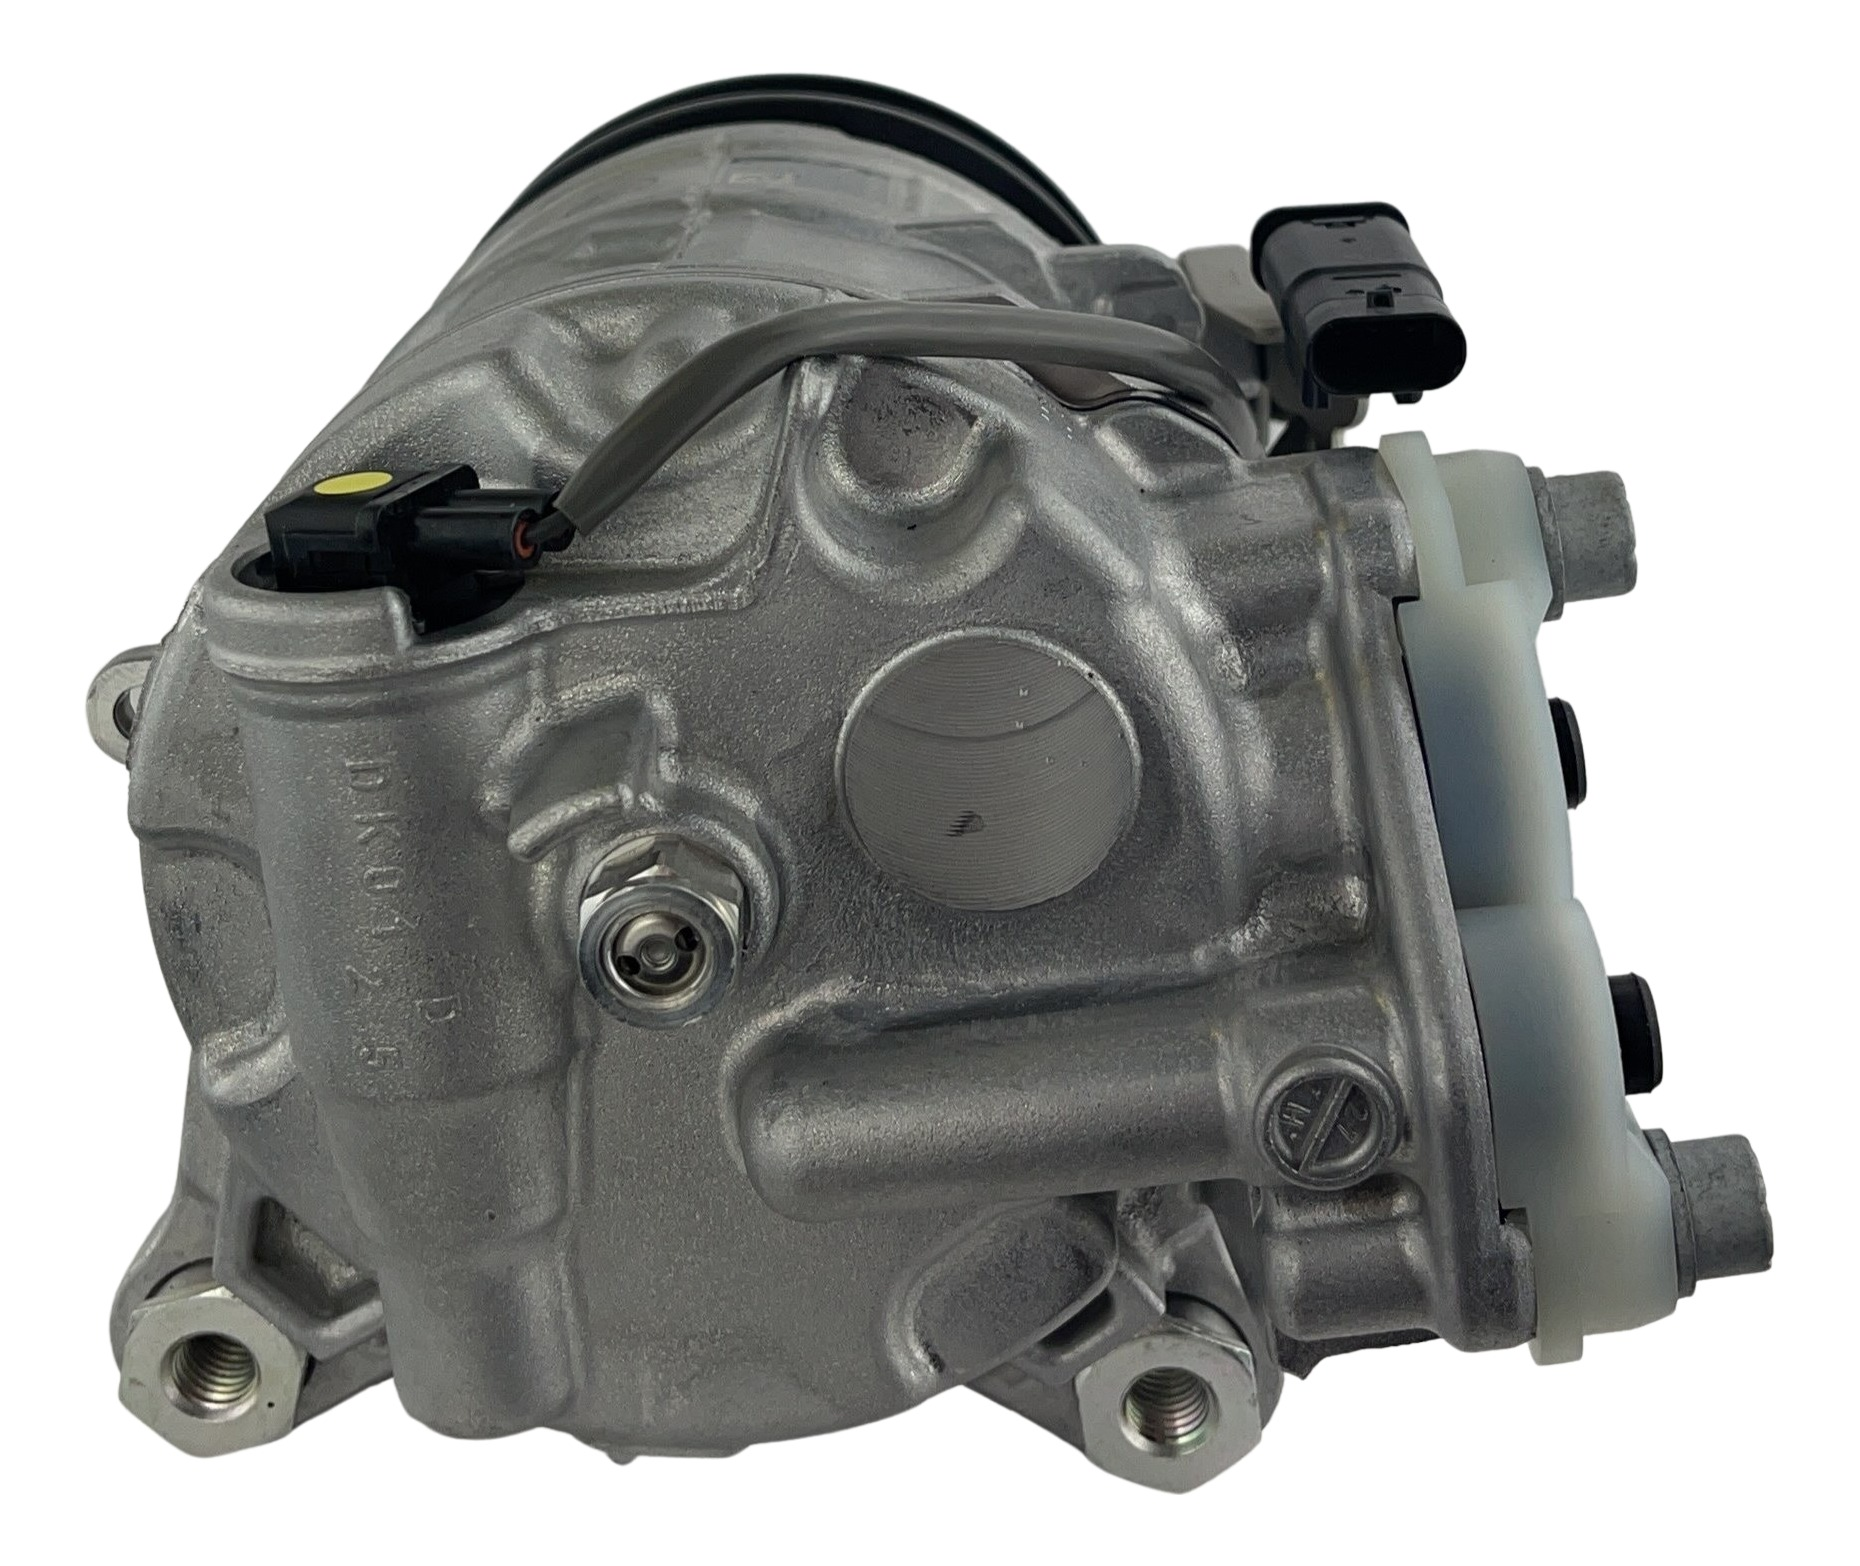 31640.6T1 Remanufactured A/C Compressor by TCW